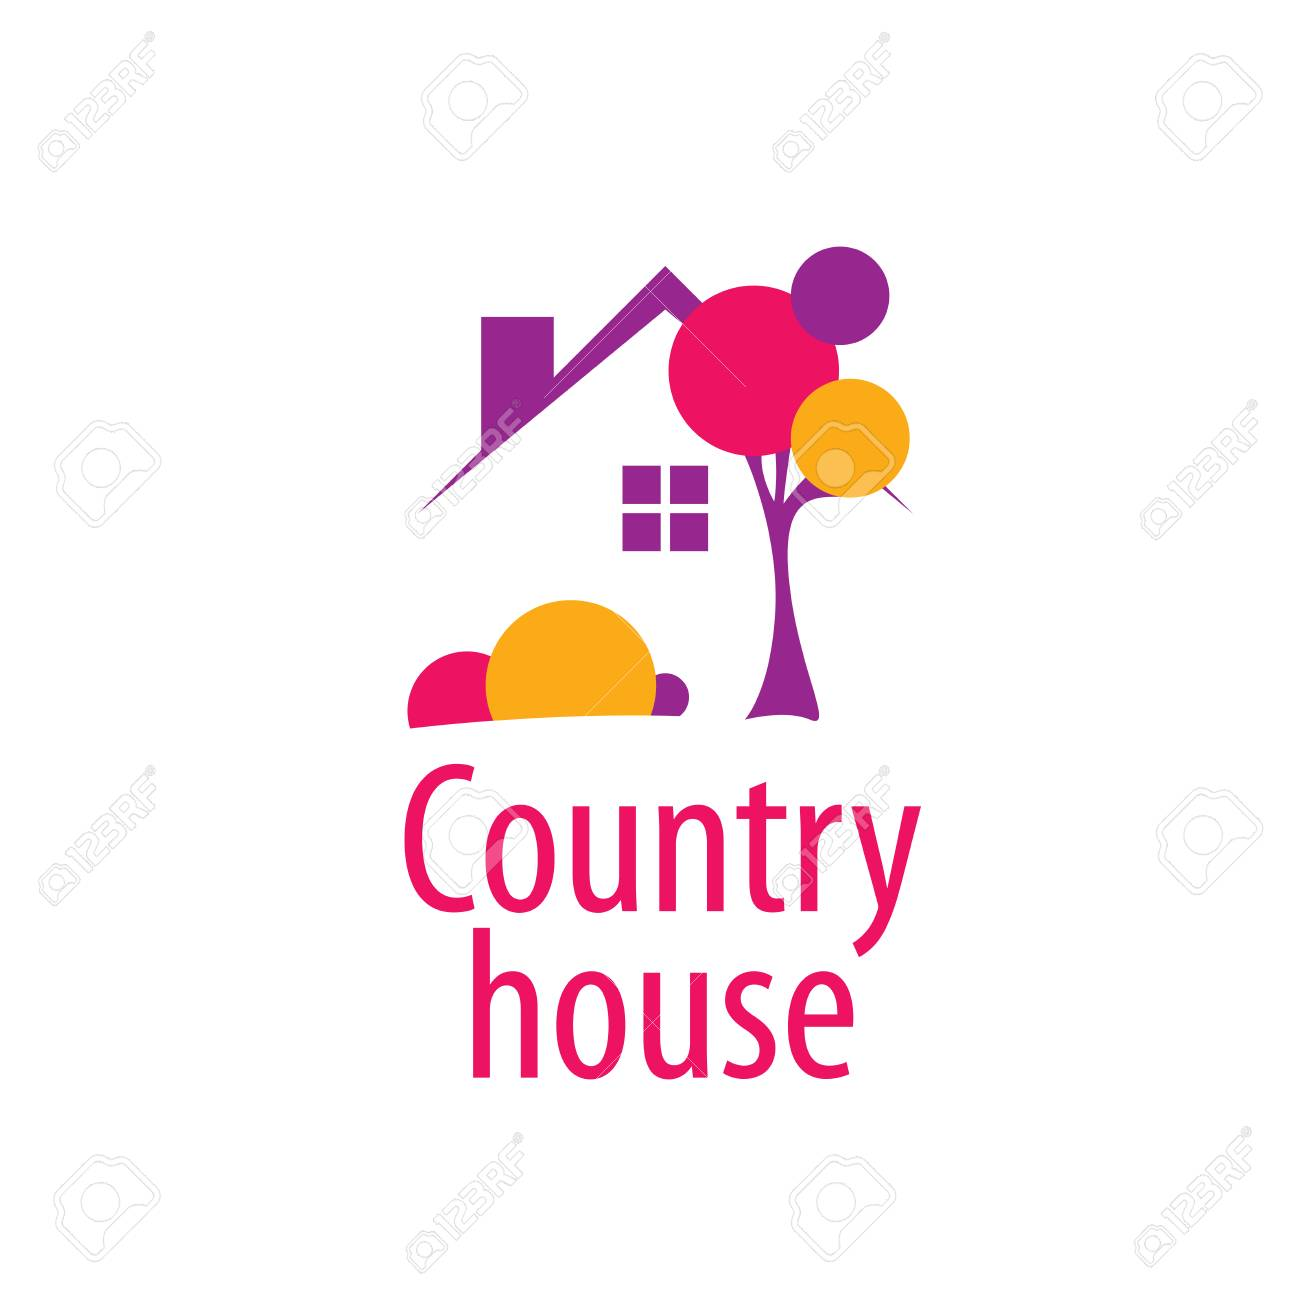 template design logo country house vector illustration of icon rh 123rf com house vector illustration house vector art